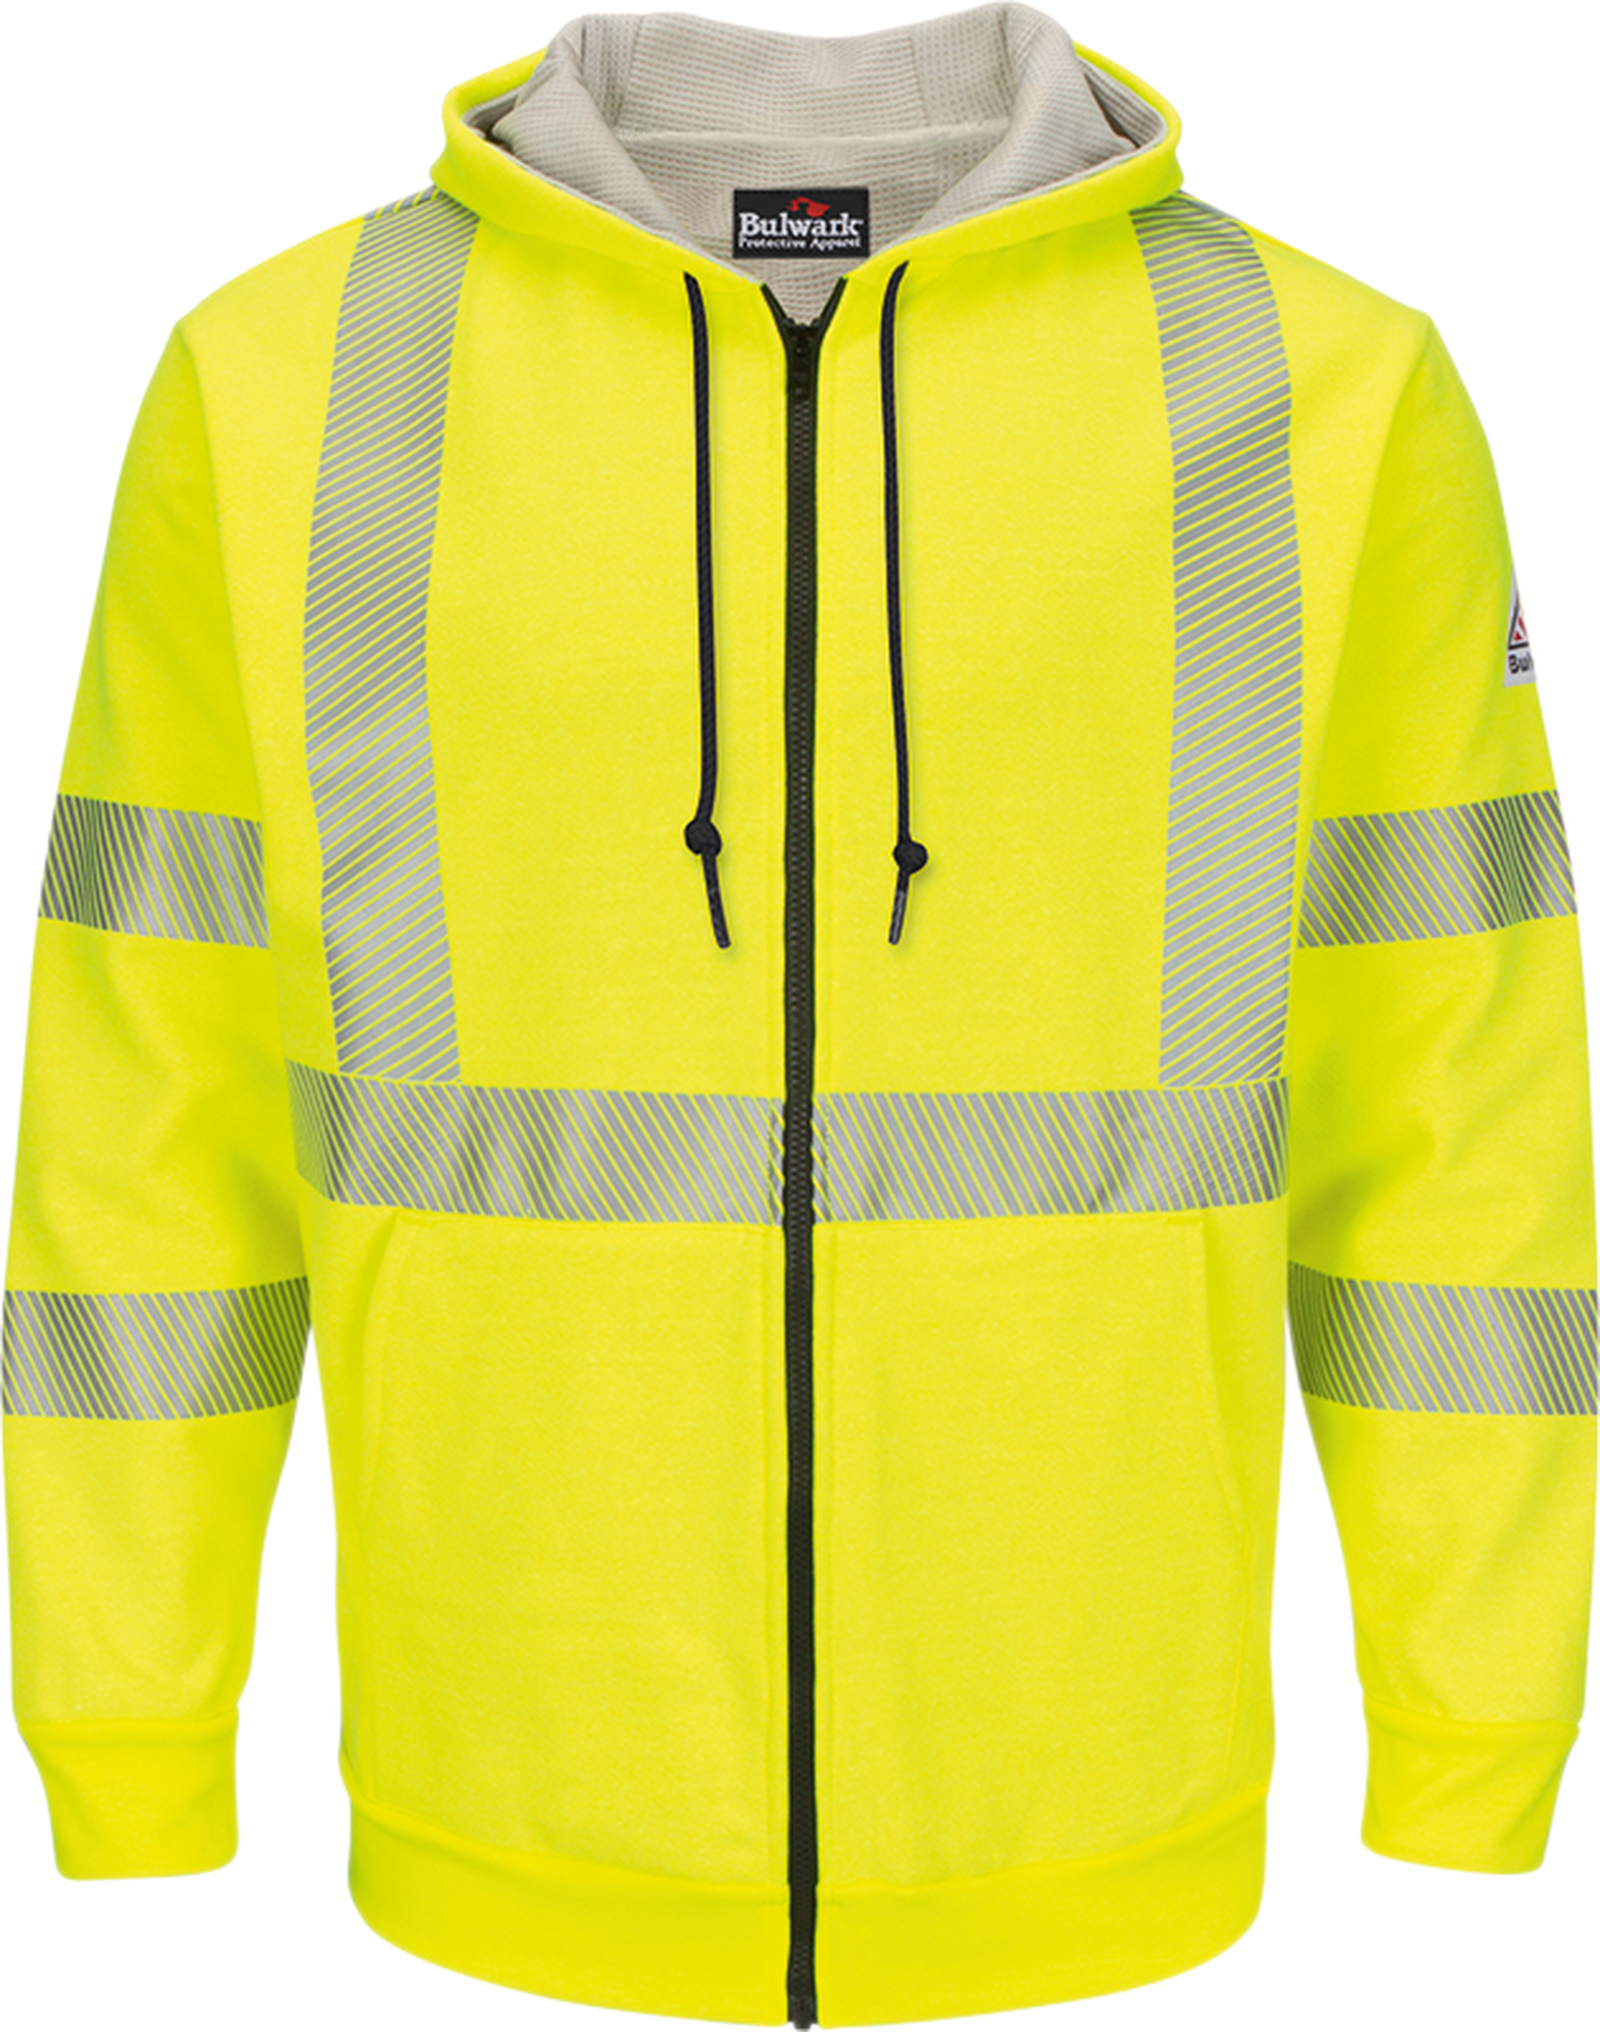 Men's Fleece FR Hi-Visibility Zip-Front Hooded Sweatshirt with Waffle Lining